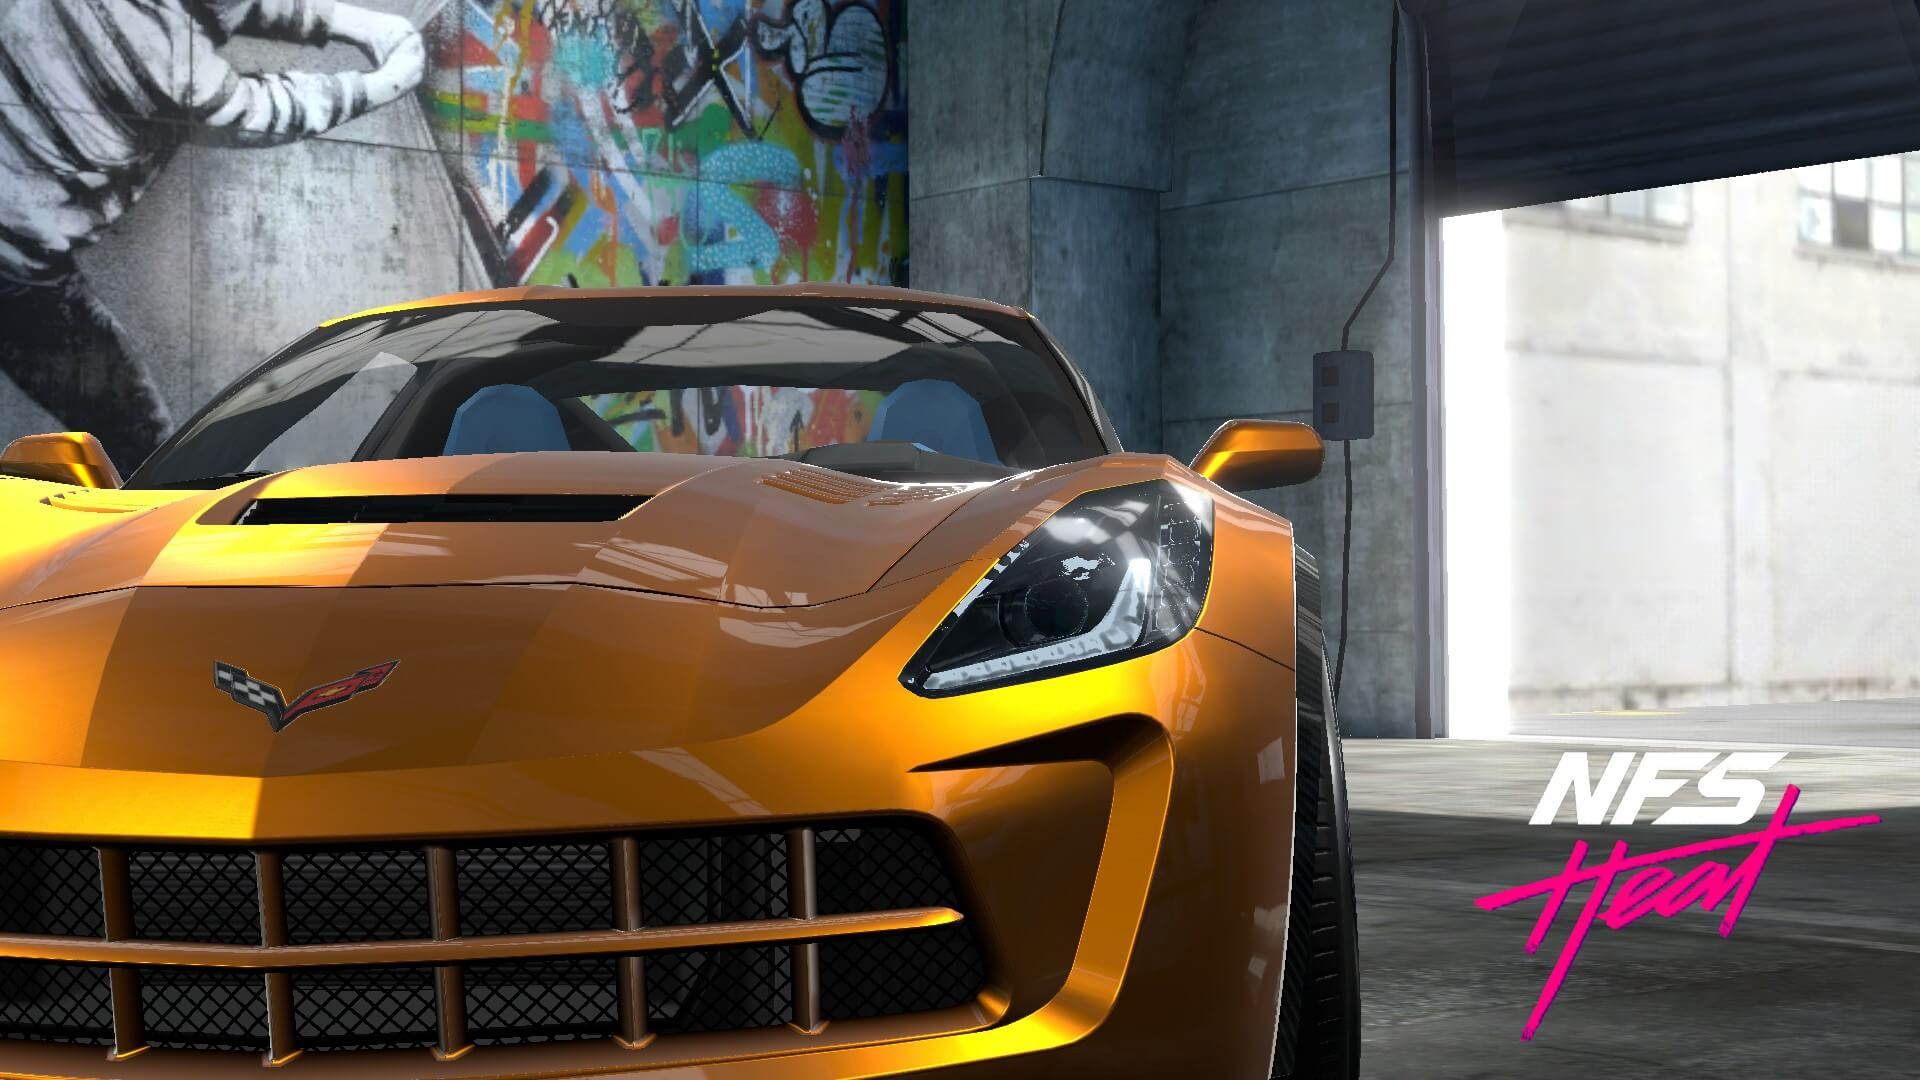 Here's the first look at Need for Speed Heat's gameplay